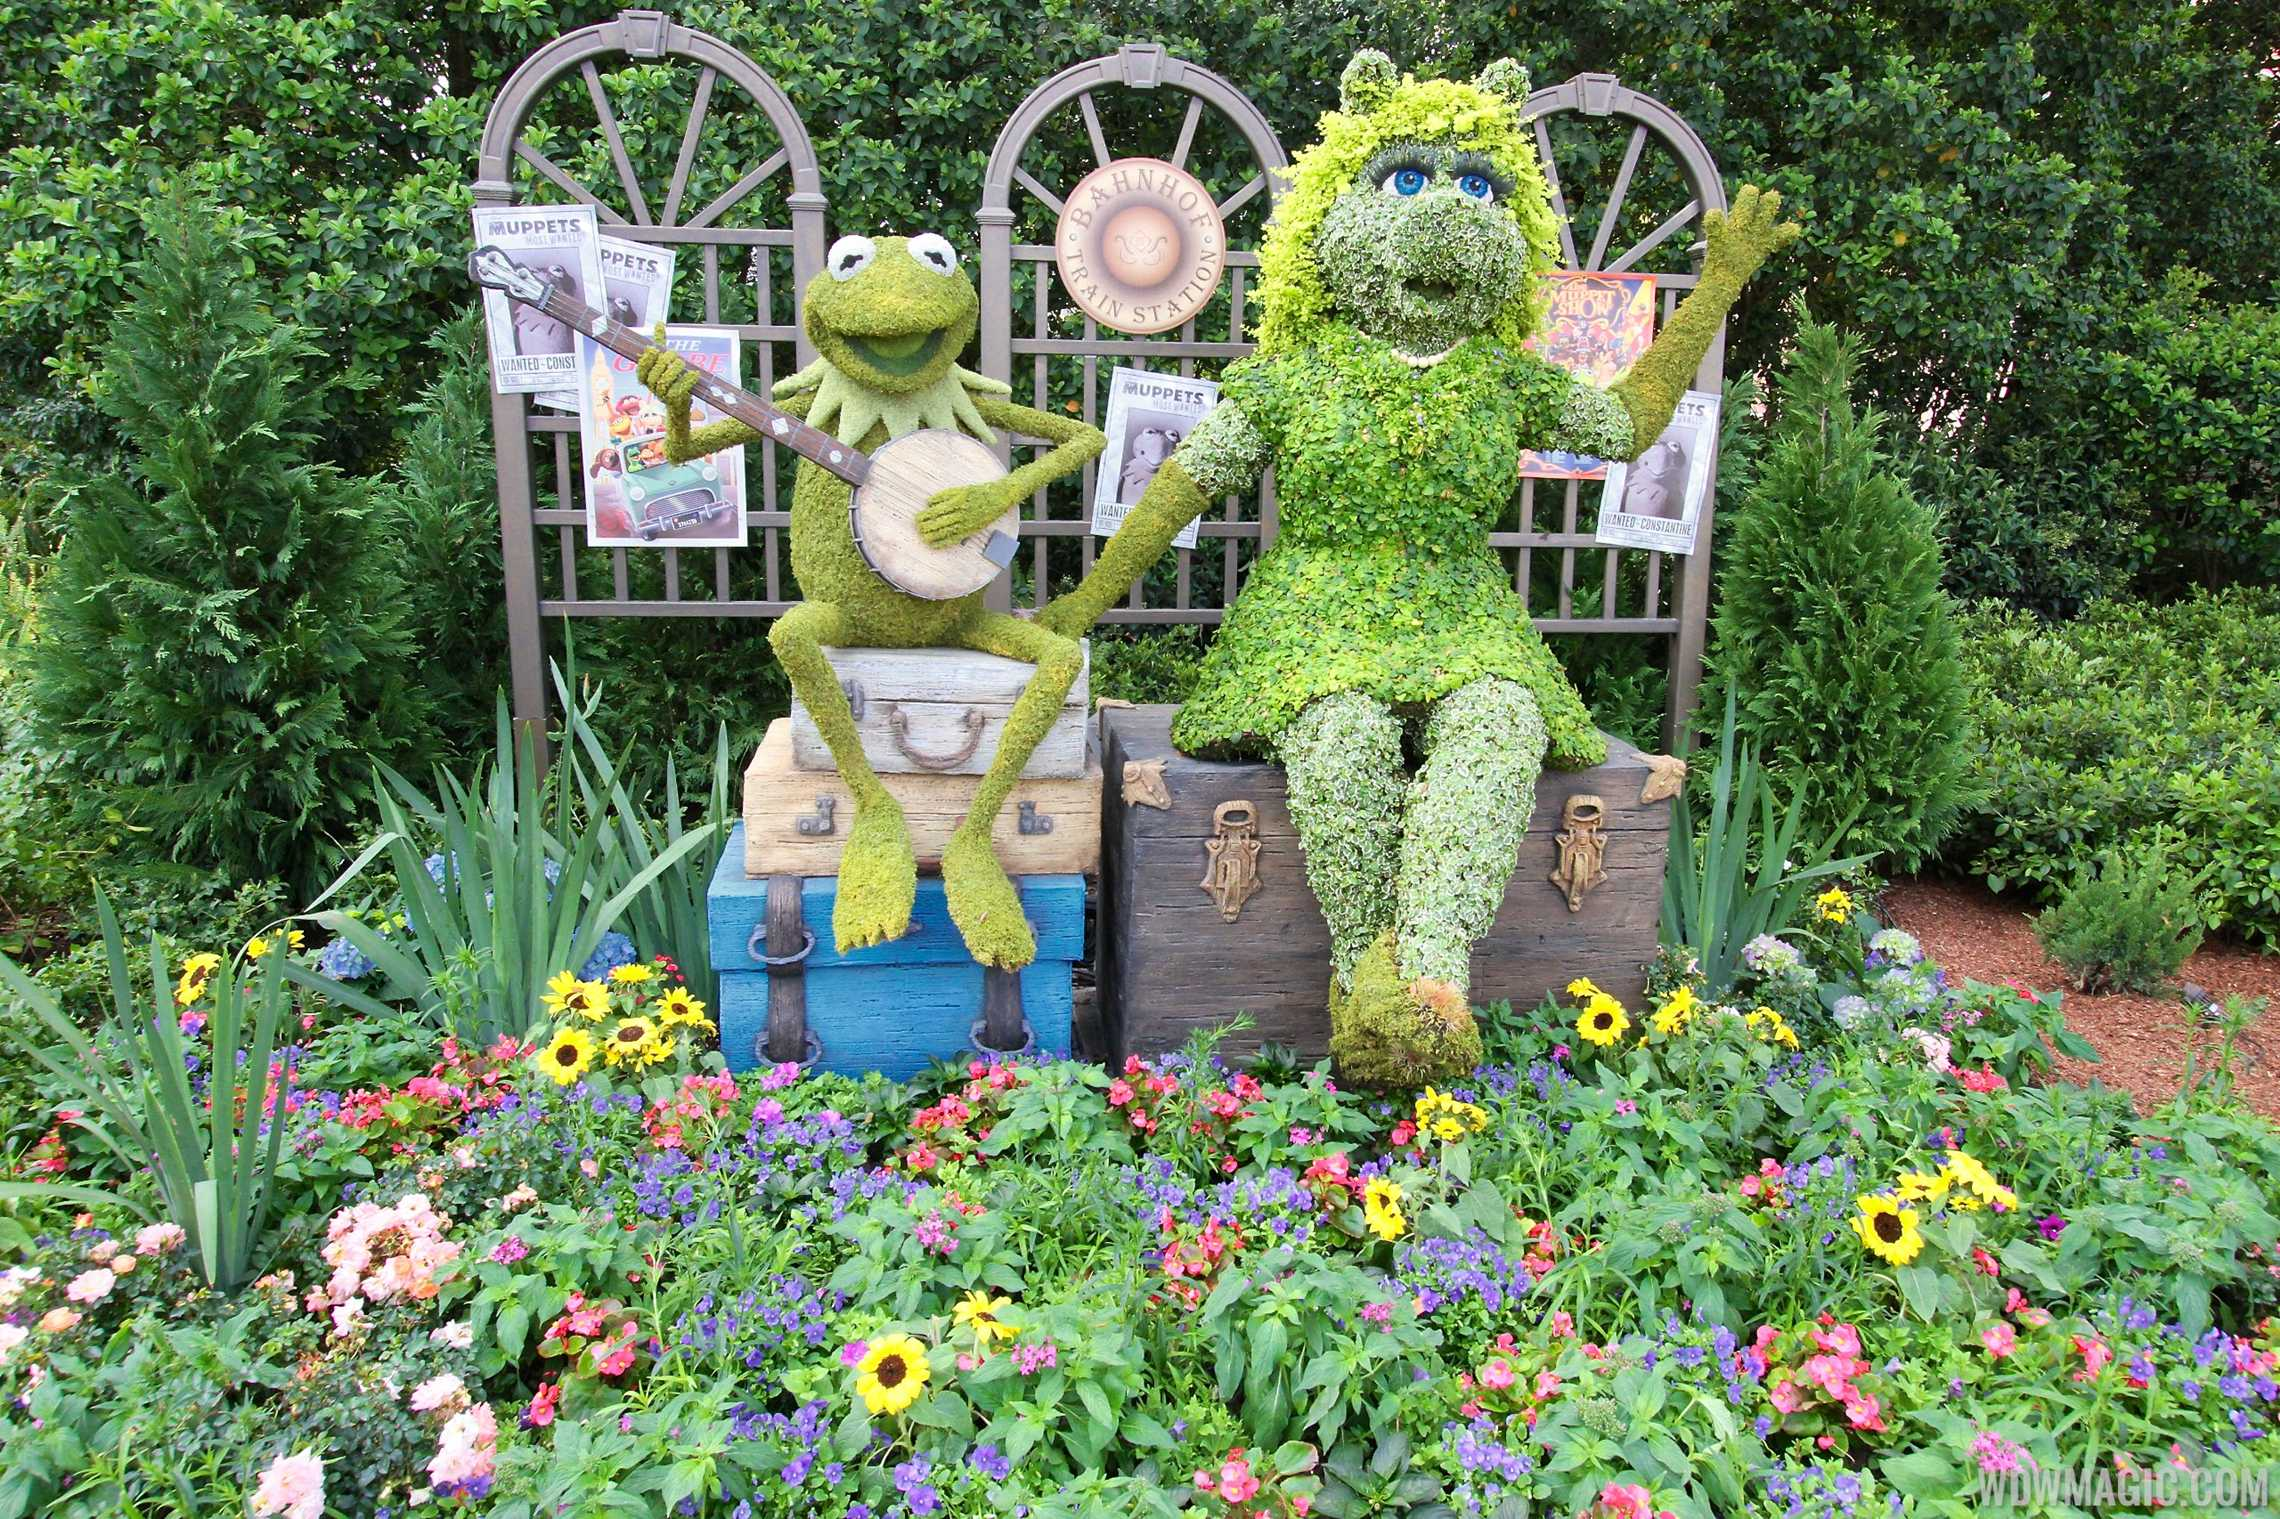 Muppet Topiary at the Flower and Garden Festival